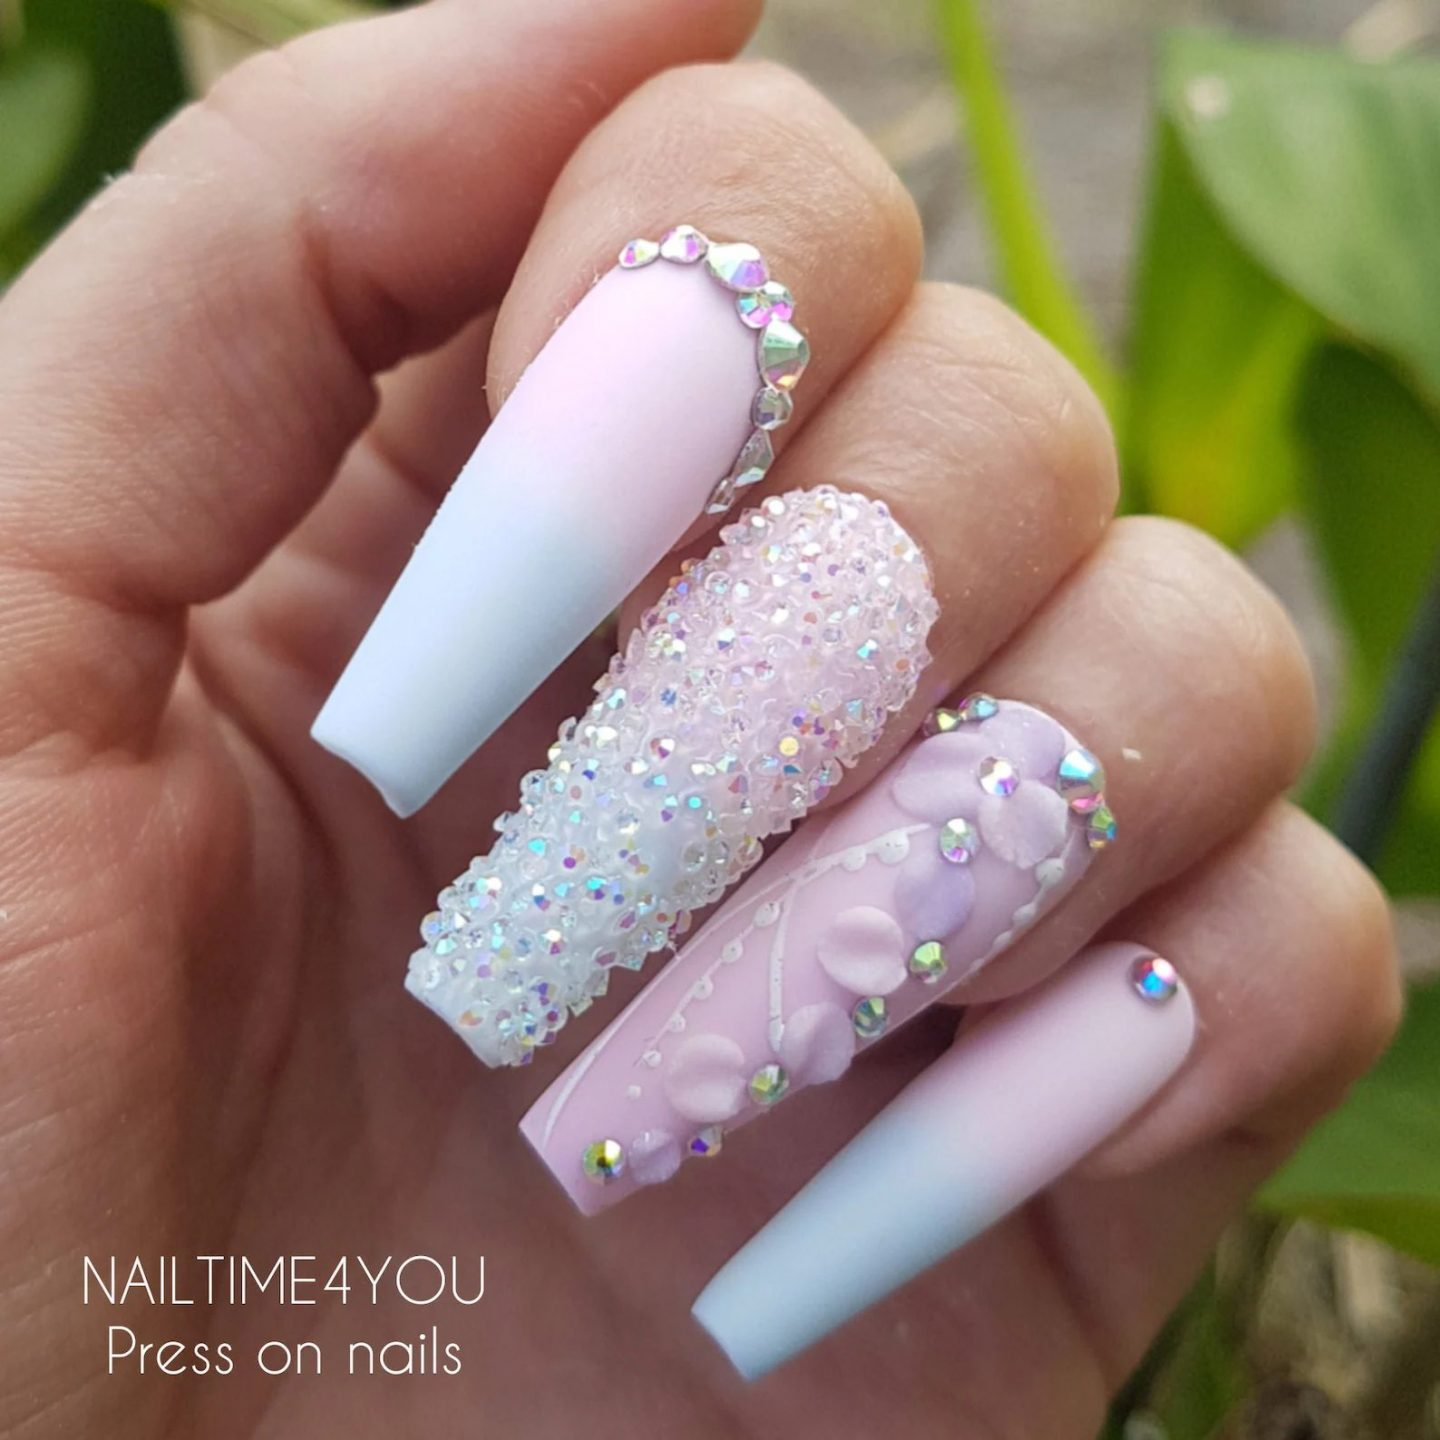 Cute pastel pink and blue ombre nails with crystals